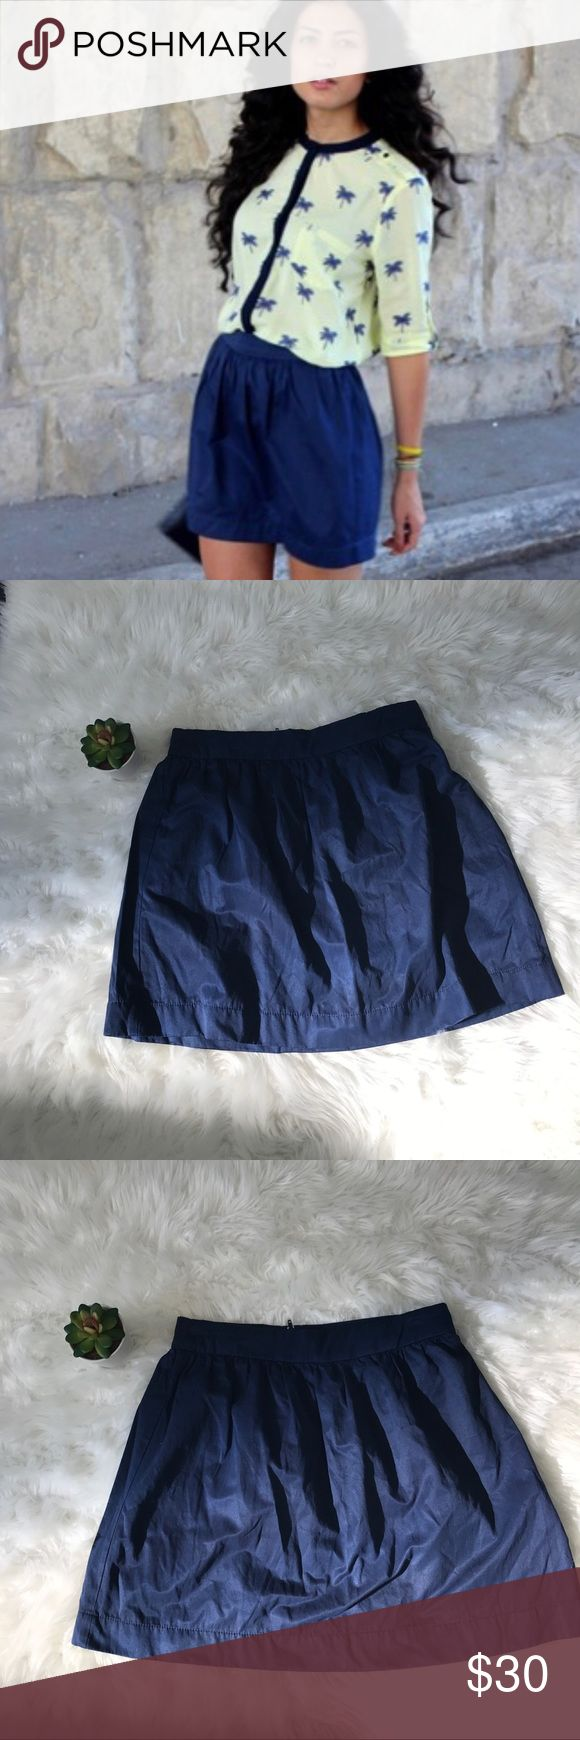 "ASOS Stradivarius Women's Navy Blue Mini Skirt-XS Adorable chiffon Navy blue pleat top A-line skirt. Mini length (mid-thigh) zip at back-XS  📍 in good condition- no stains or rips! Smoke feee home  Measurements laying flat  Waist-13"" Length-16"" ASOS Skirts"